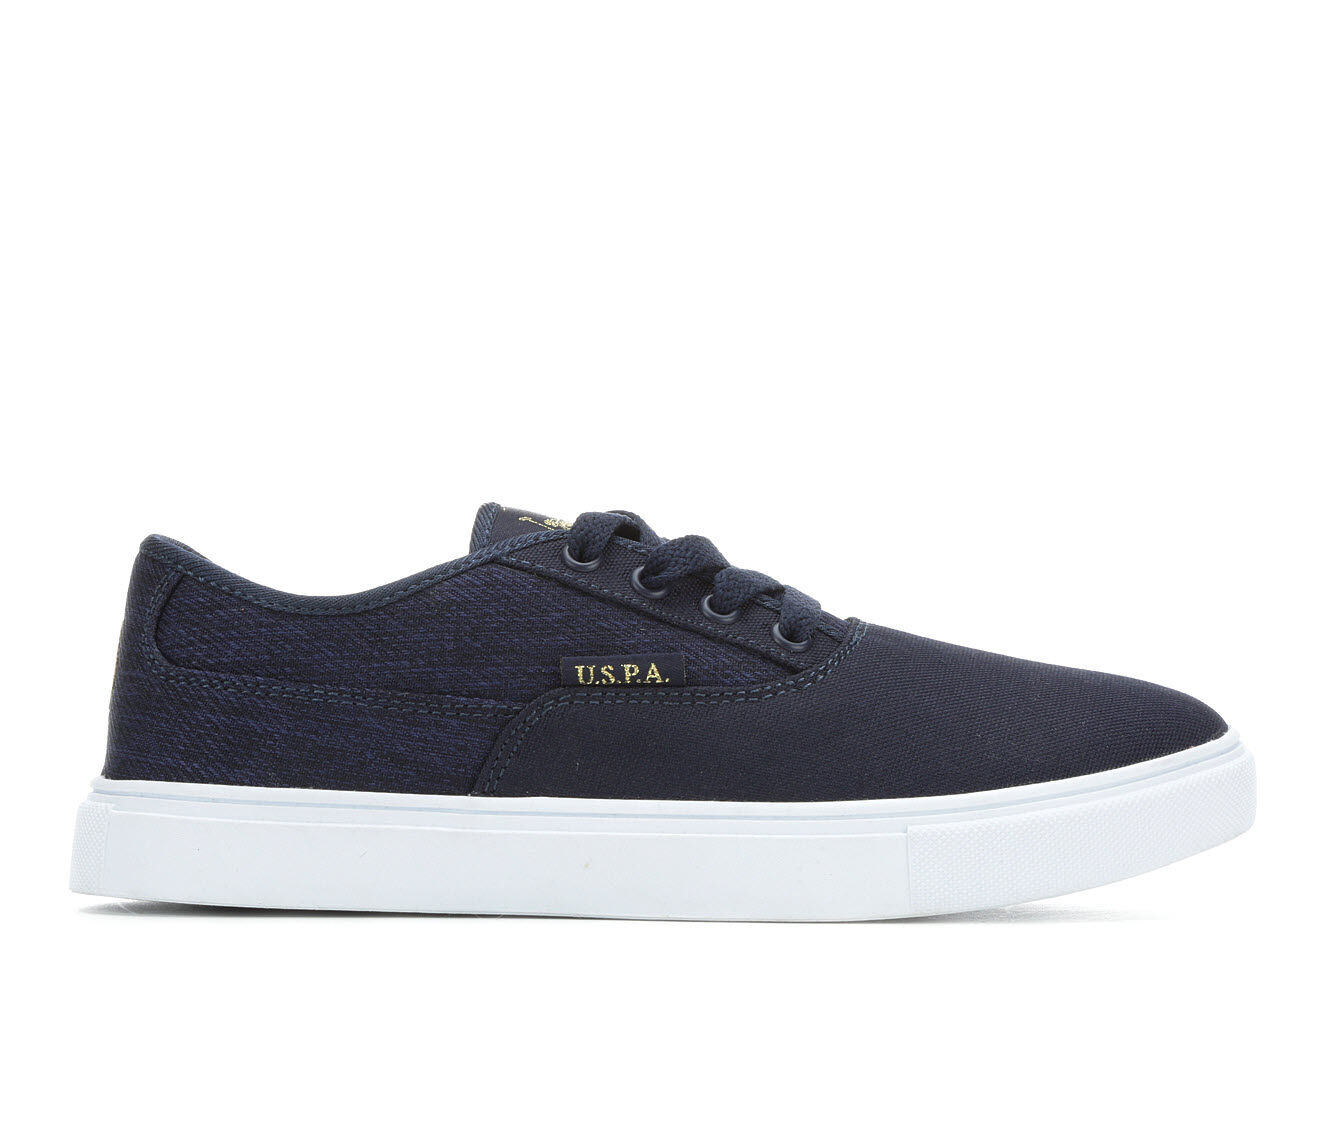 shop authentic new style Women's US Polo Assn Encore Sneakers Navy